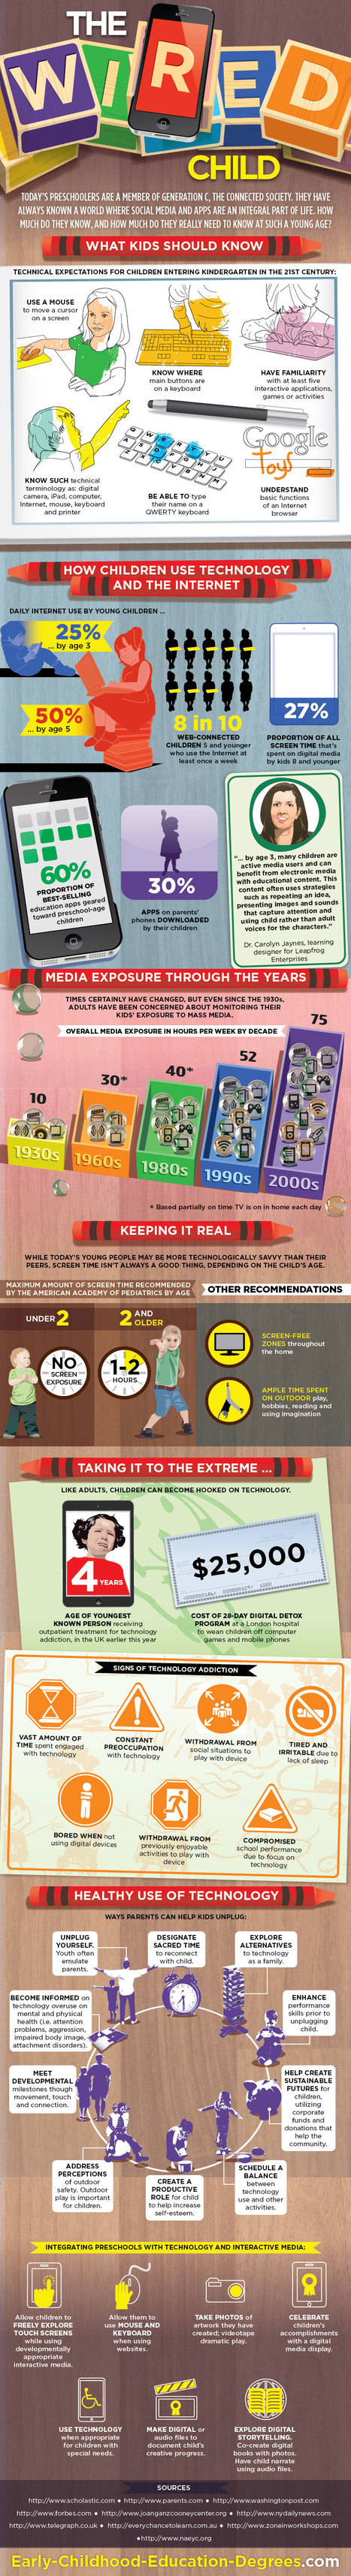 The Complete Visual Guide To Technology For Children [Infographic] | iEduc | Scoop.it